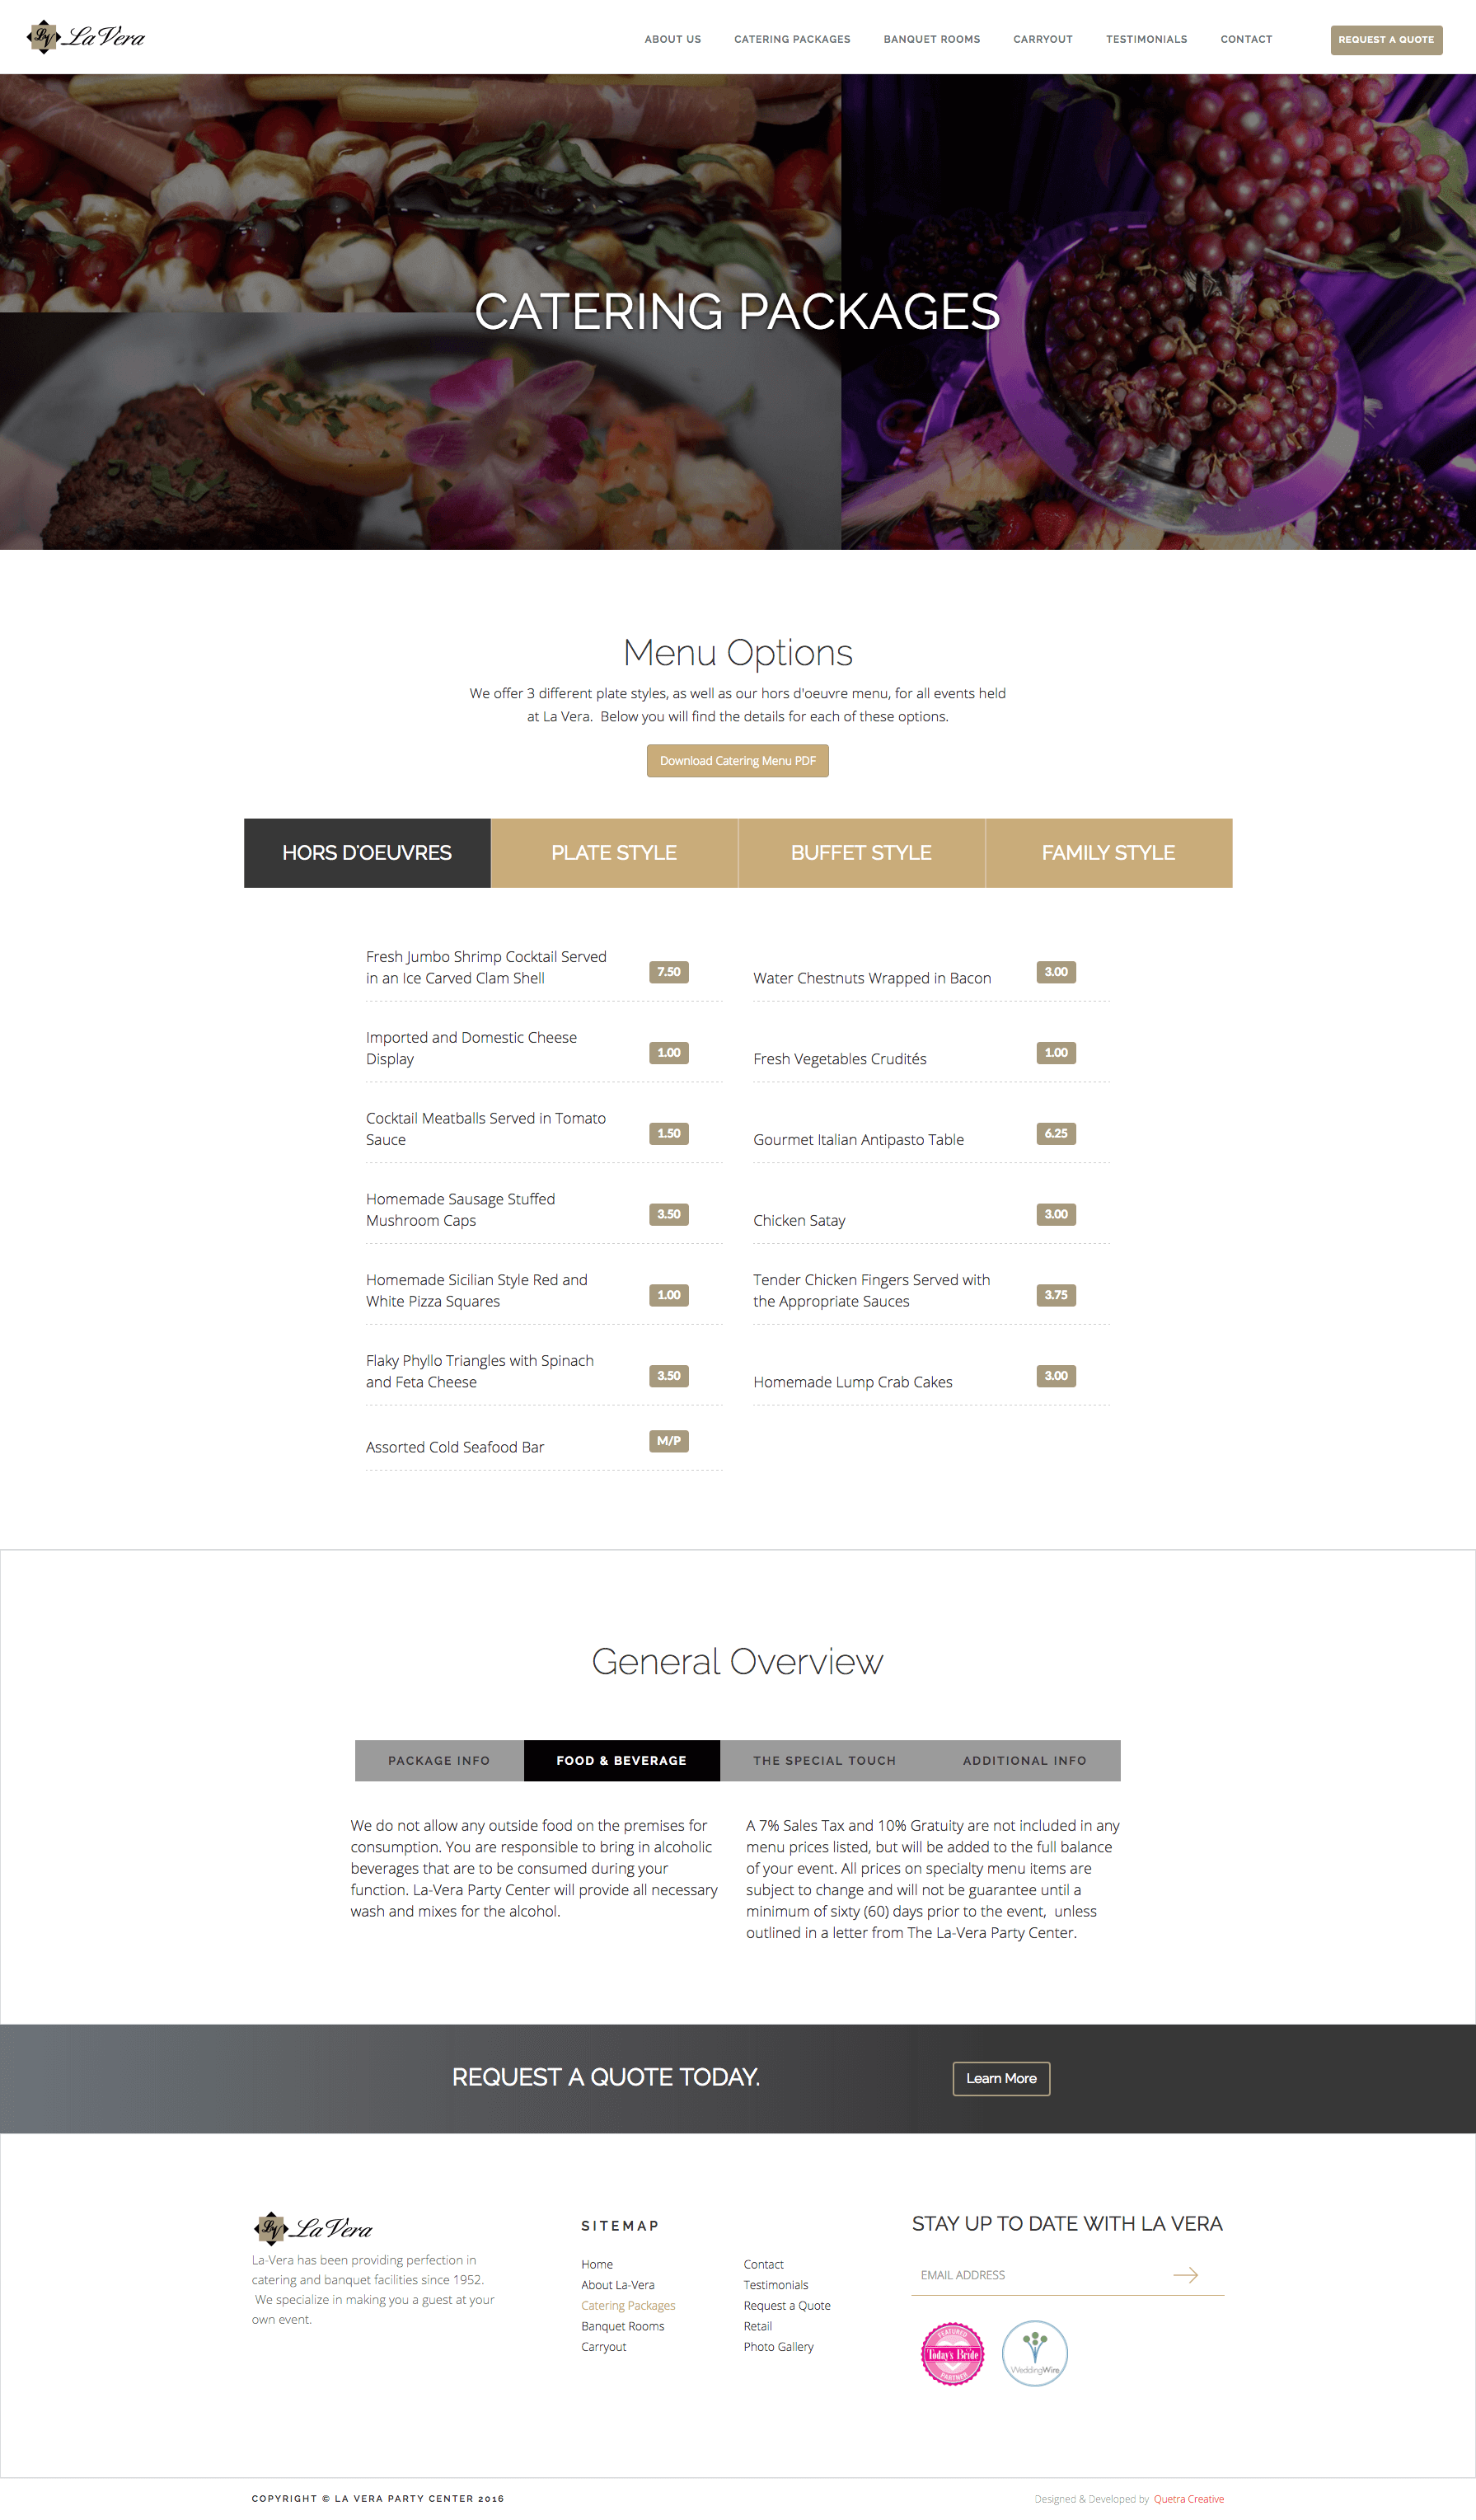 Image of responsive web design case study by Quetra Creative for La Vera Party Center Menu